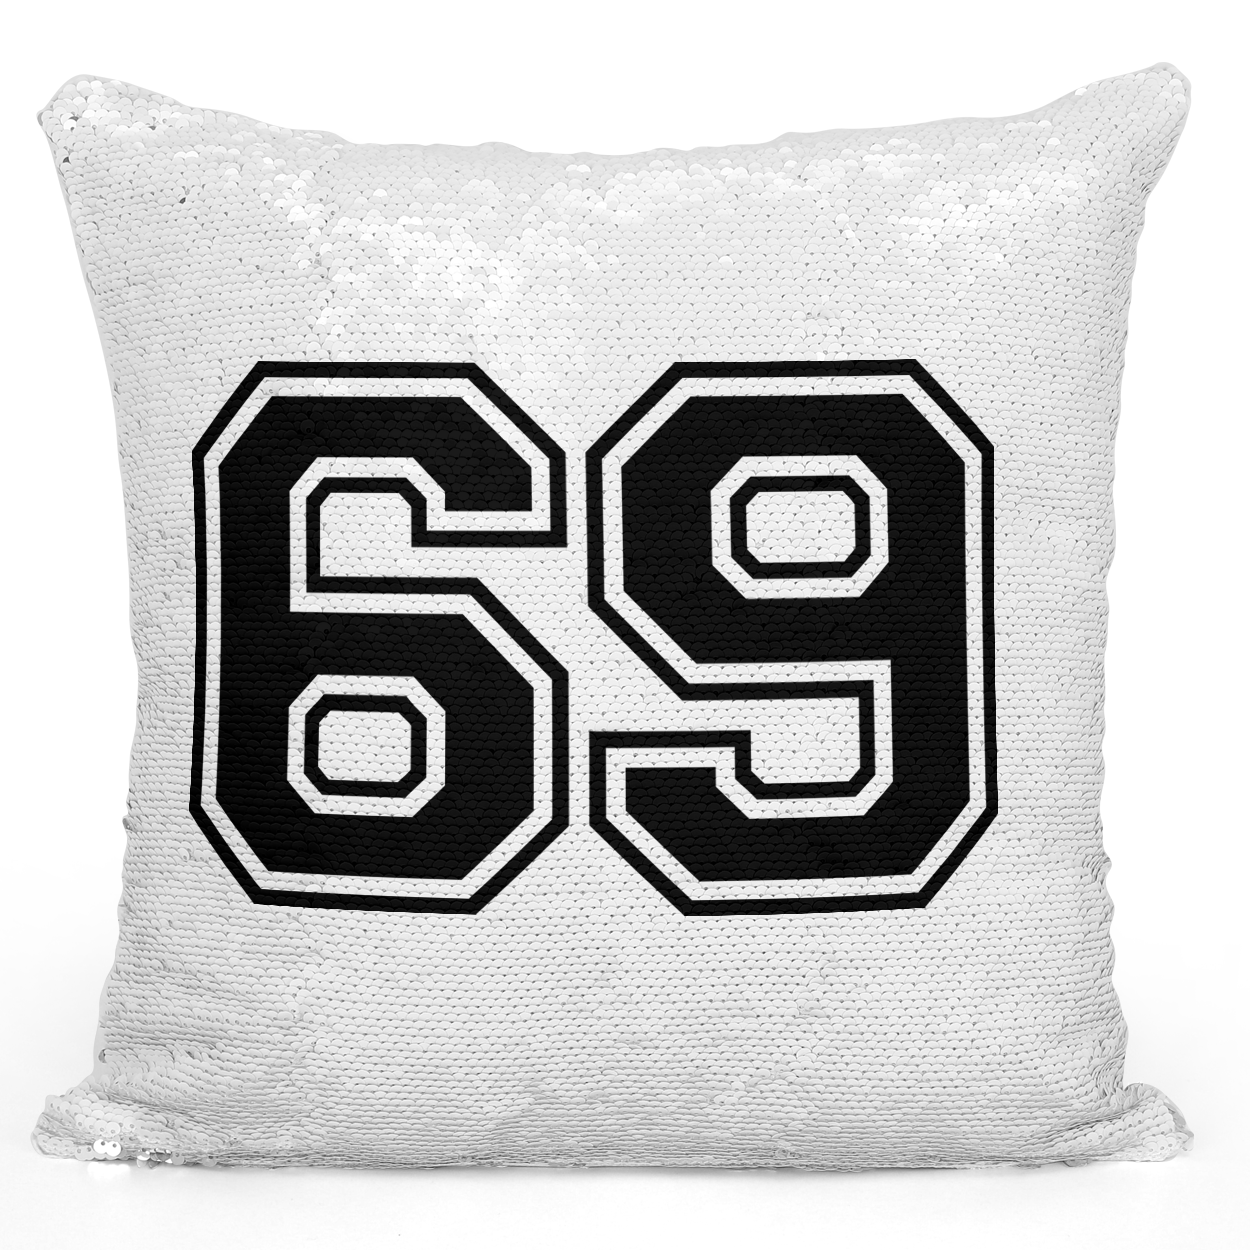 Sequin Pillow Magic Mermaid Throw Pillow Sports Pillow Team Player Number 69 In Black - Premium 100% Polyester 16 x 16 inch Square Modern Livingroom Decorative Pillow Loud Universe